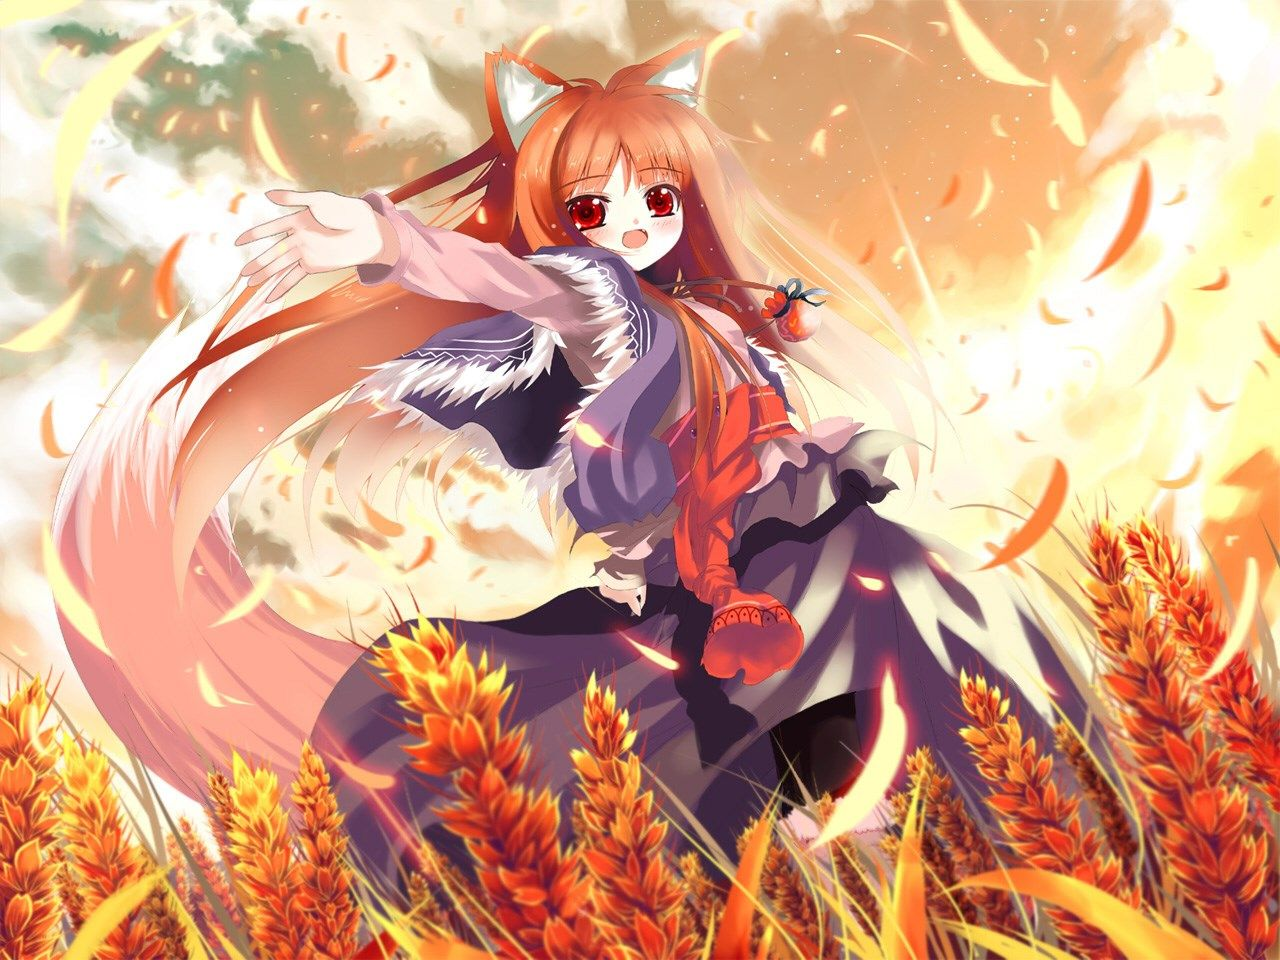 Spice And Wolf Backround For Large Desktop Spice And Wolf Category Anime Wolf Girl Spice And Wolf Holo Spice And Wolf